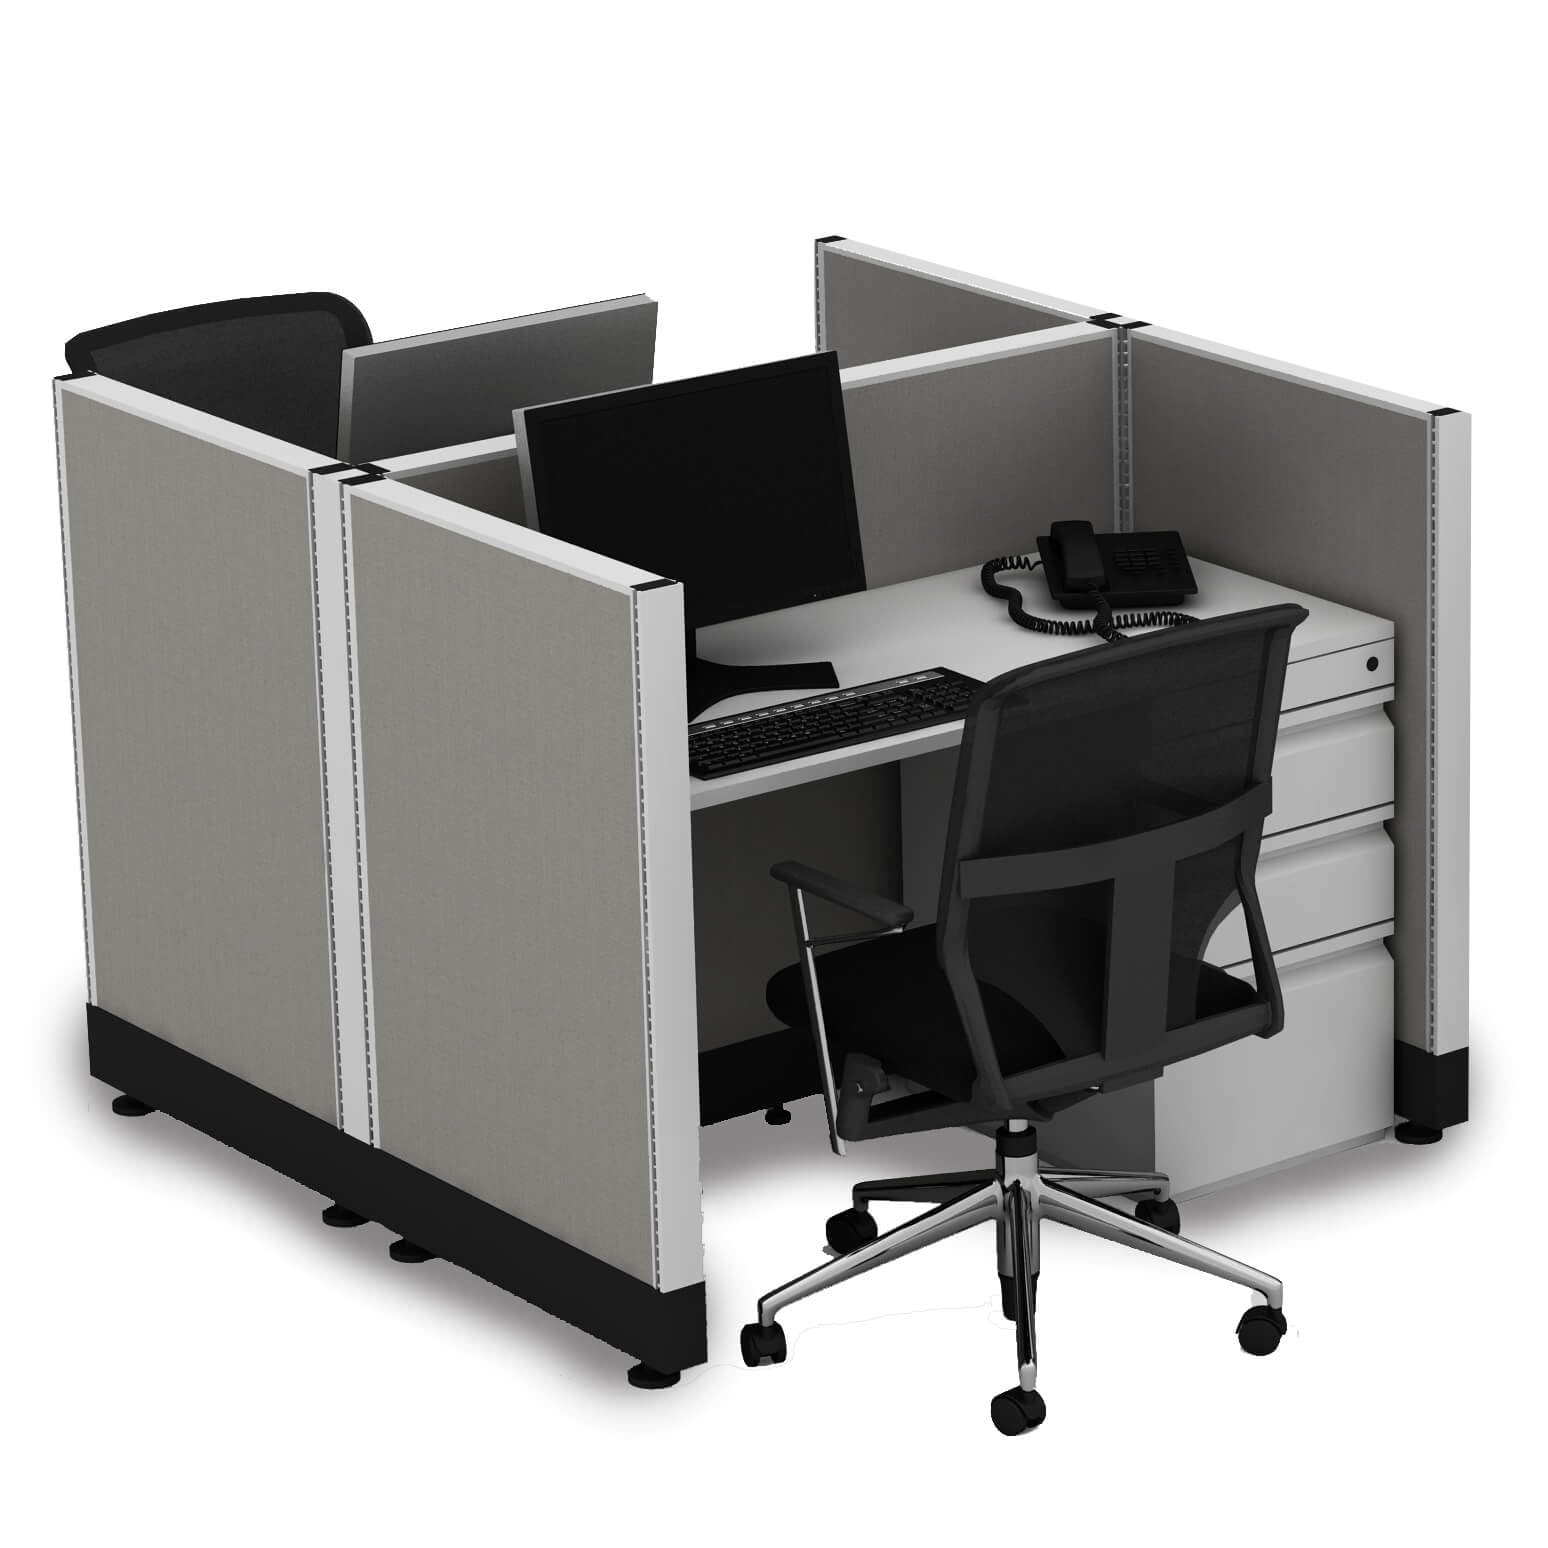 Small Cubicles 39H 2pack Cluster Powered (3x4 - Espresso Desk White Paint - Assembled)